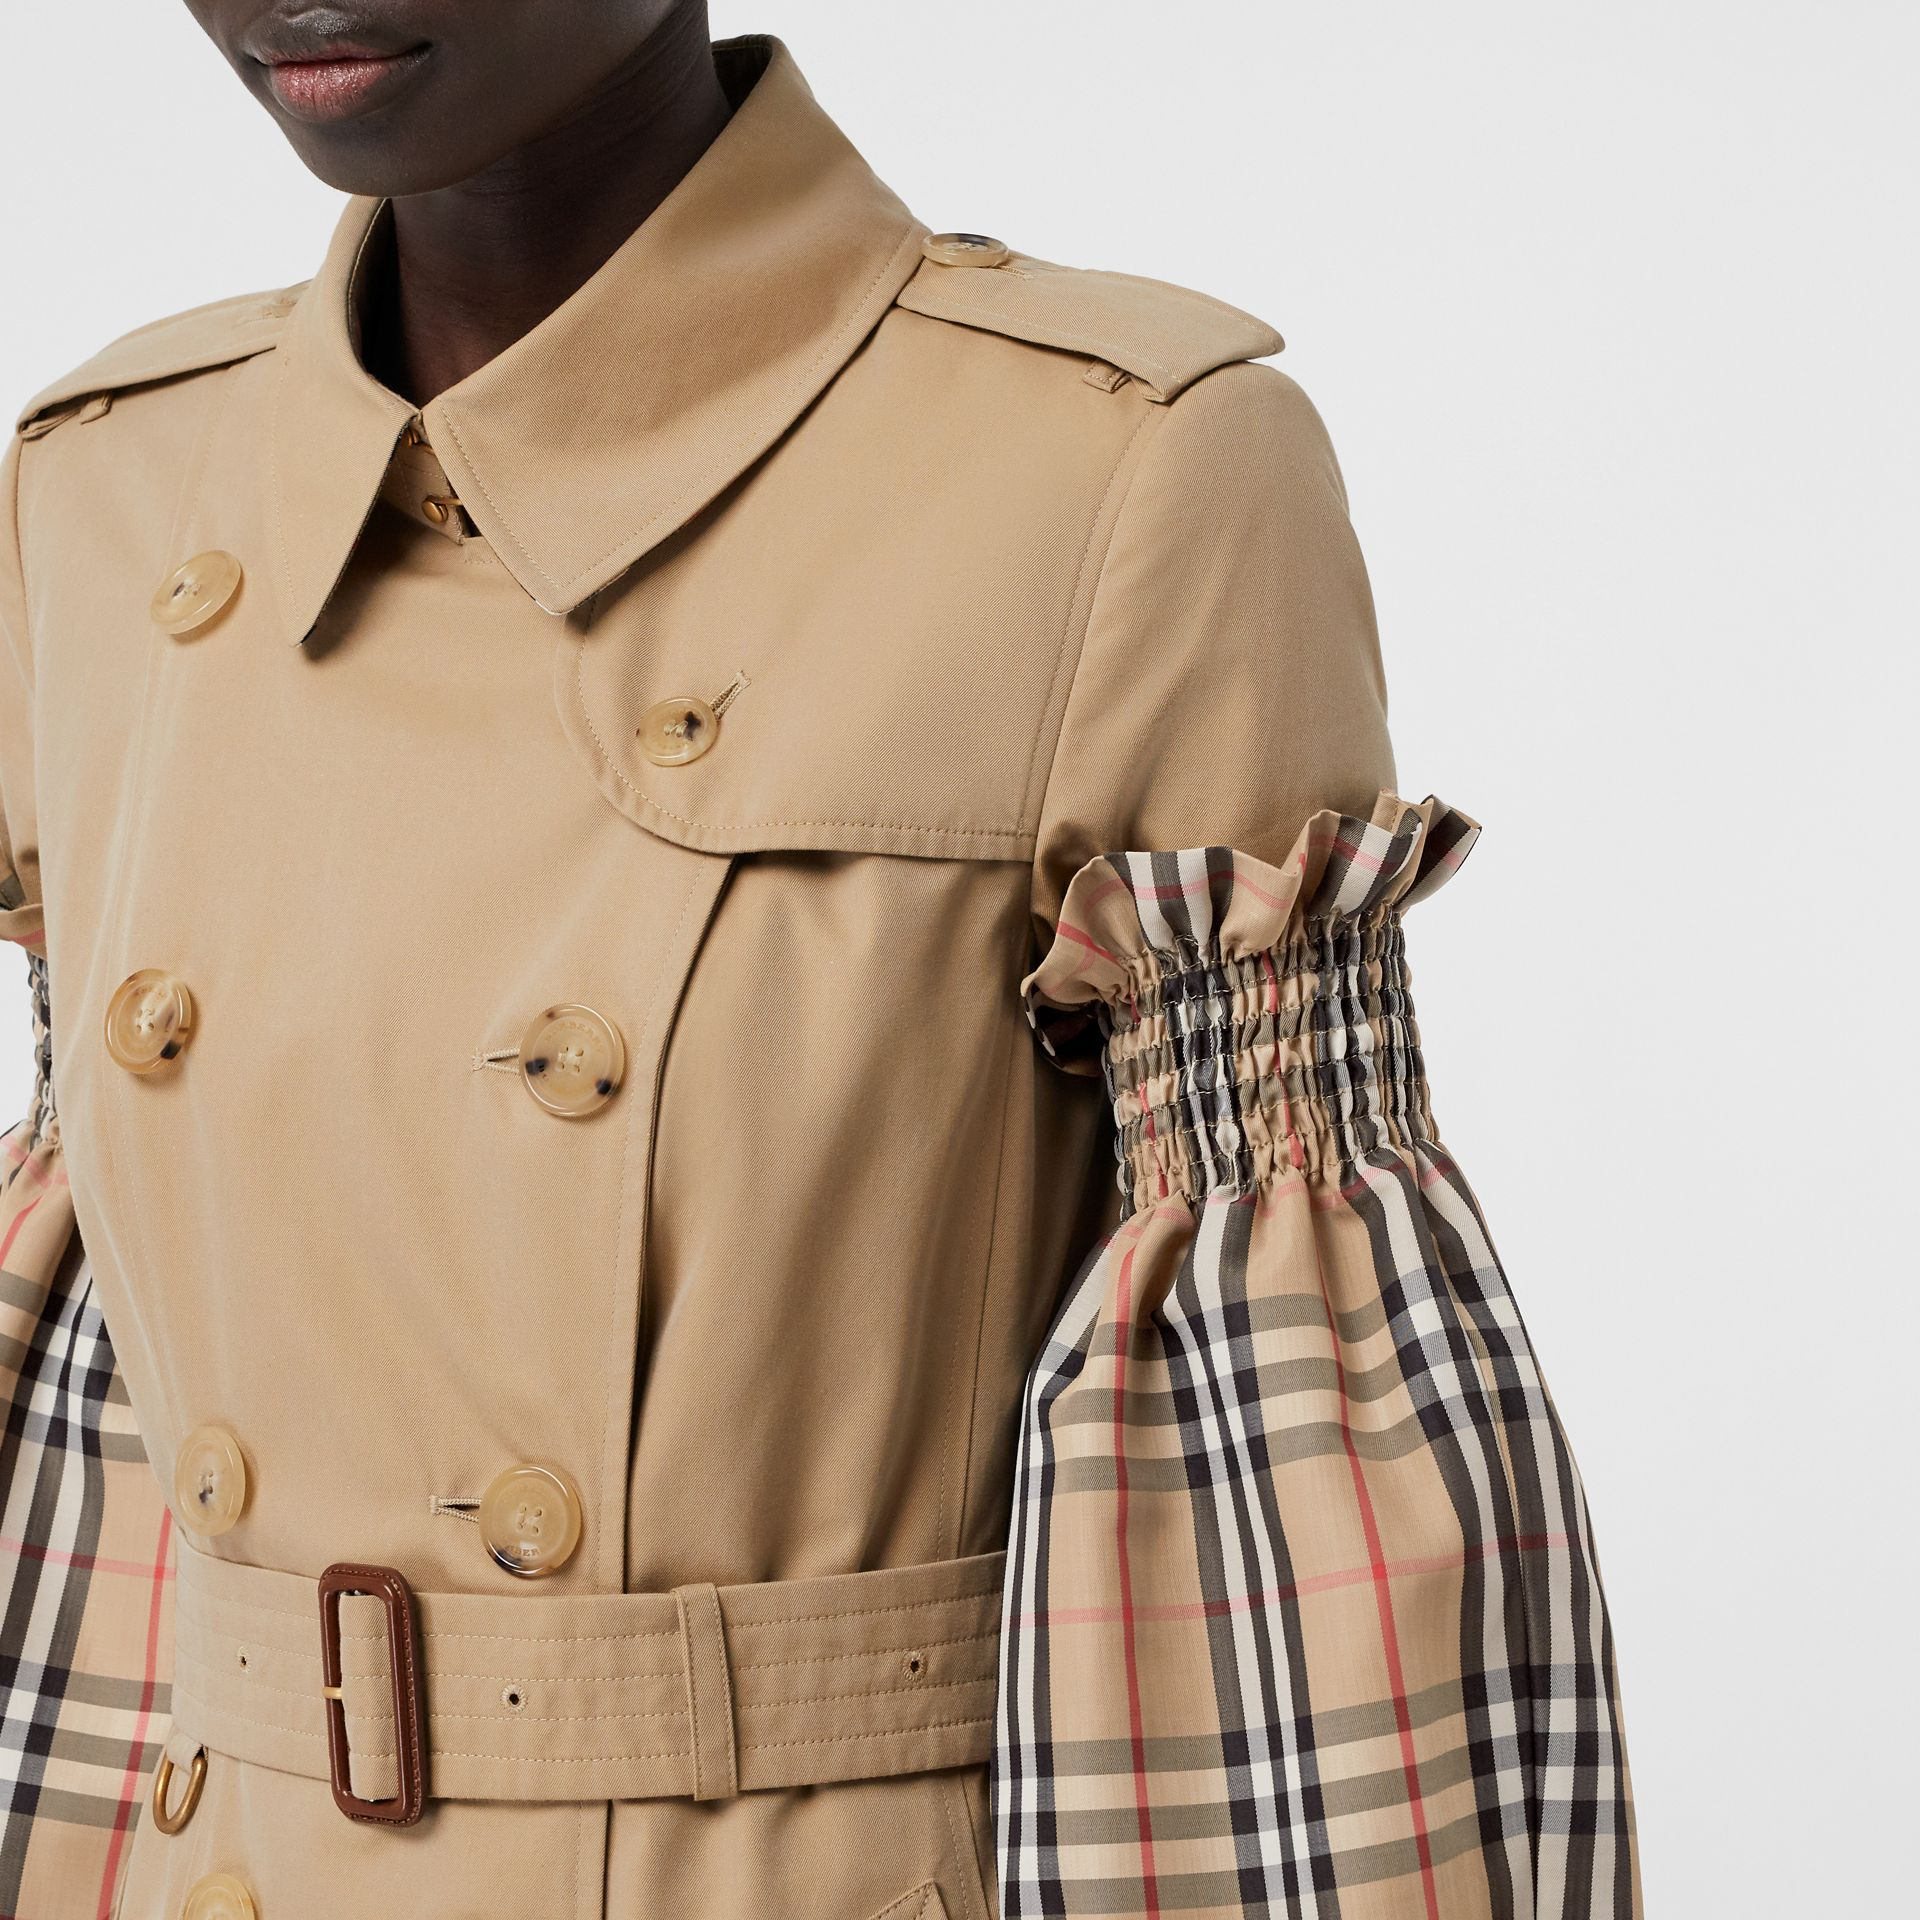 Vintage Check Puff Sleeves in Archive Beige - Women | Burberry - gallery image 4